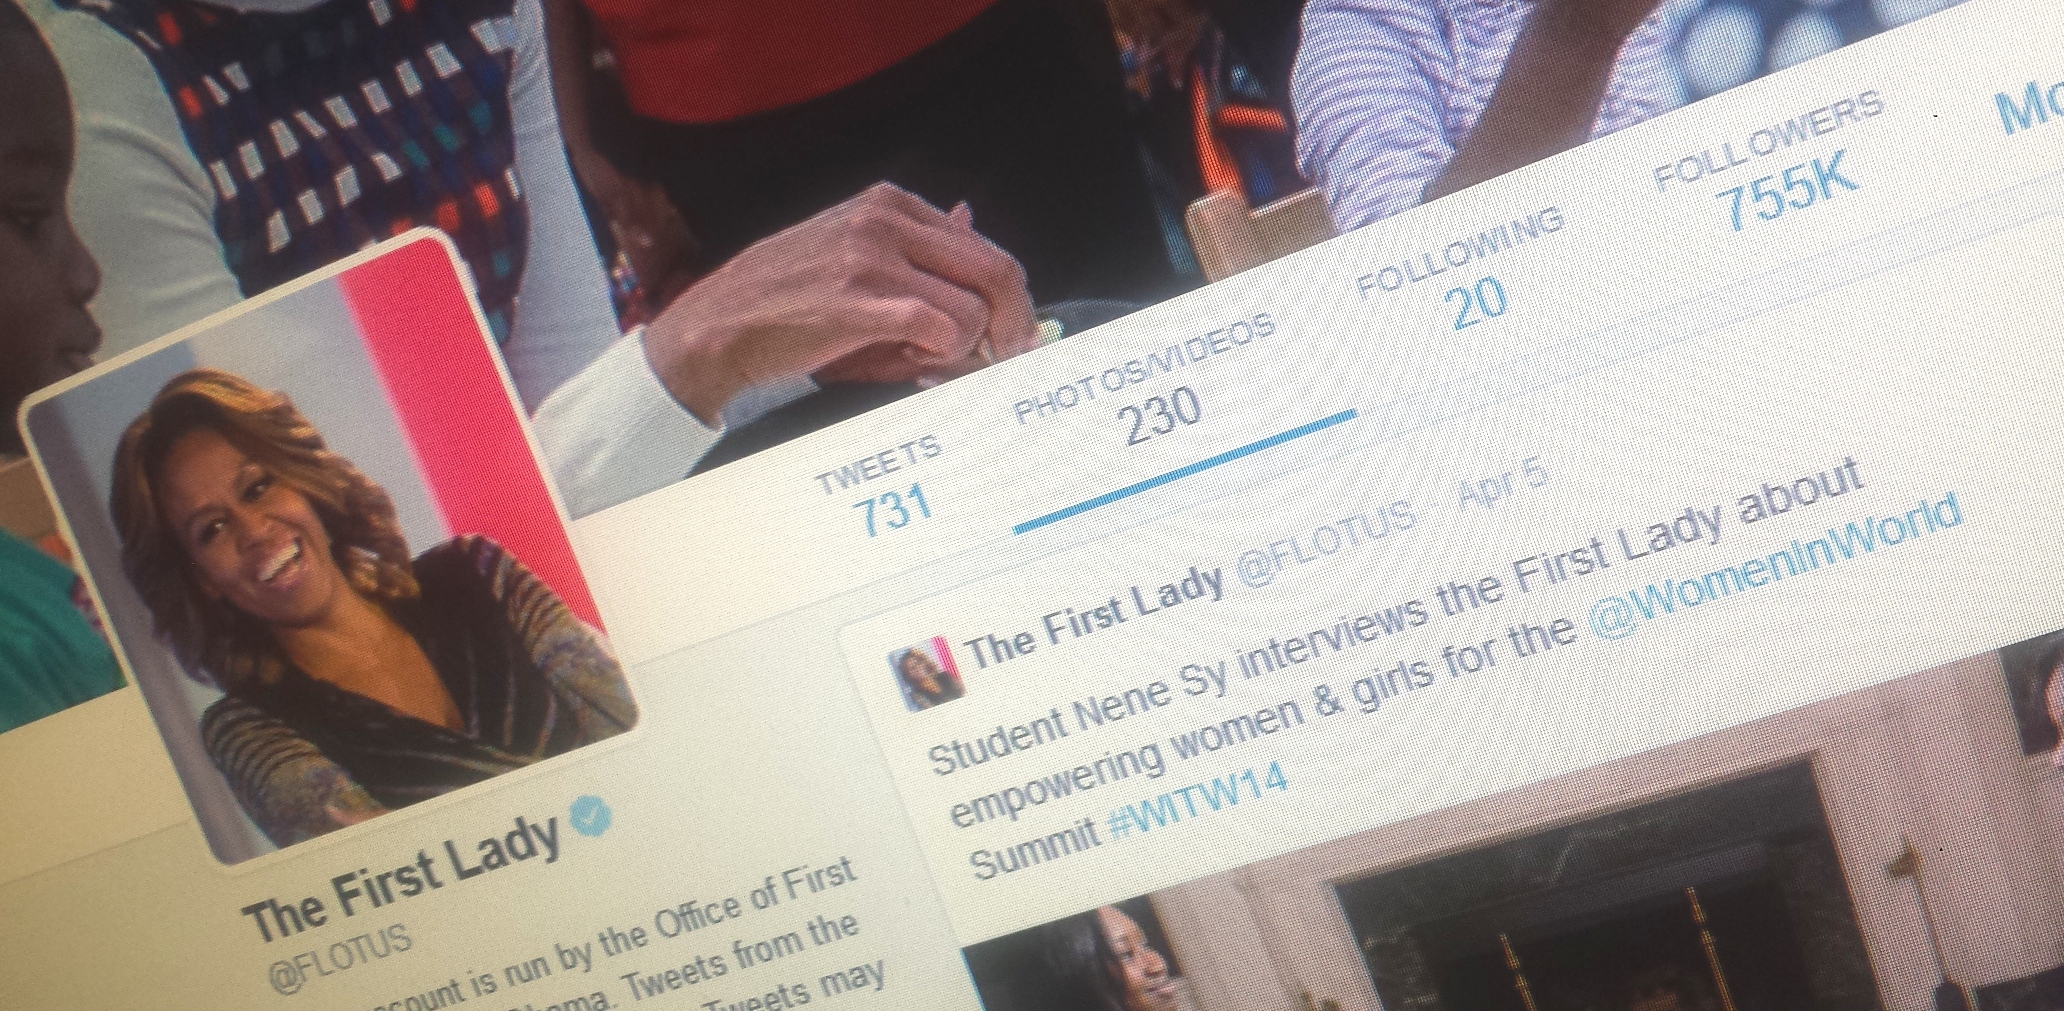 Twitter Rolls Out Its New Web User Profile Pages to All